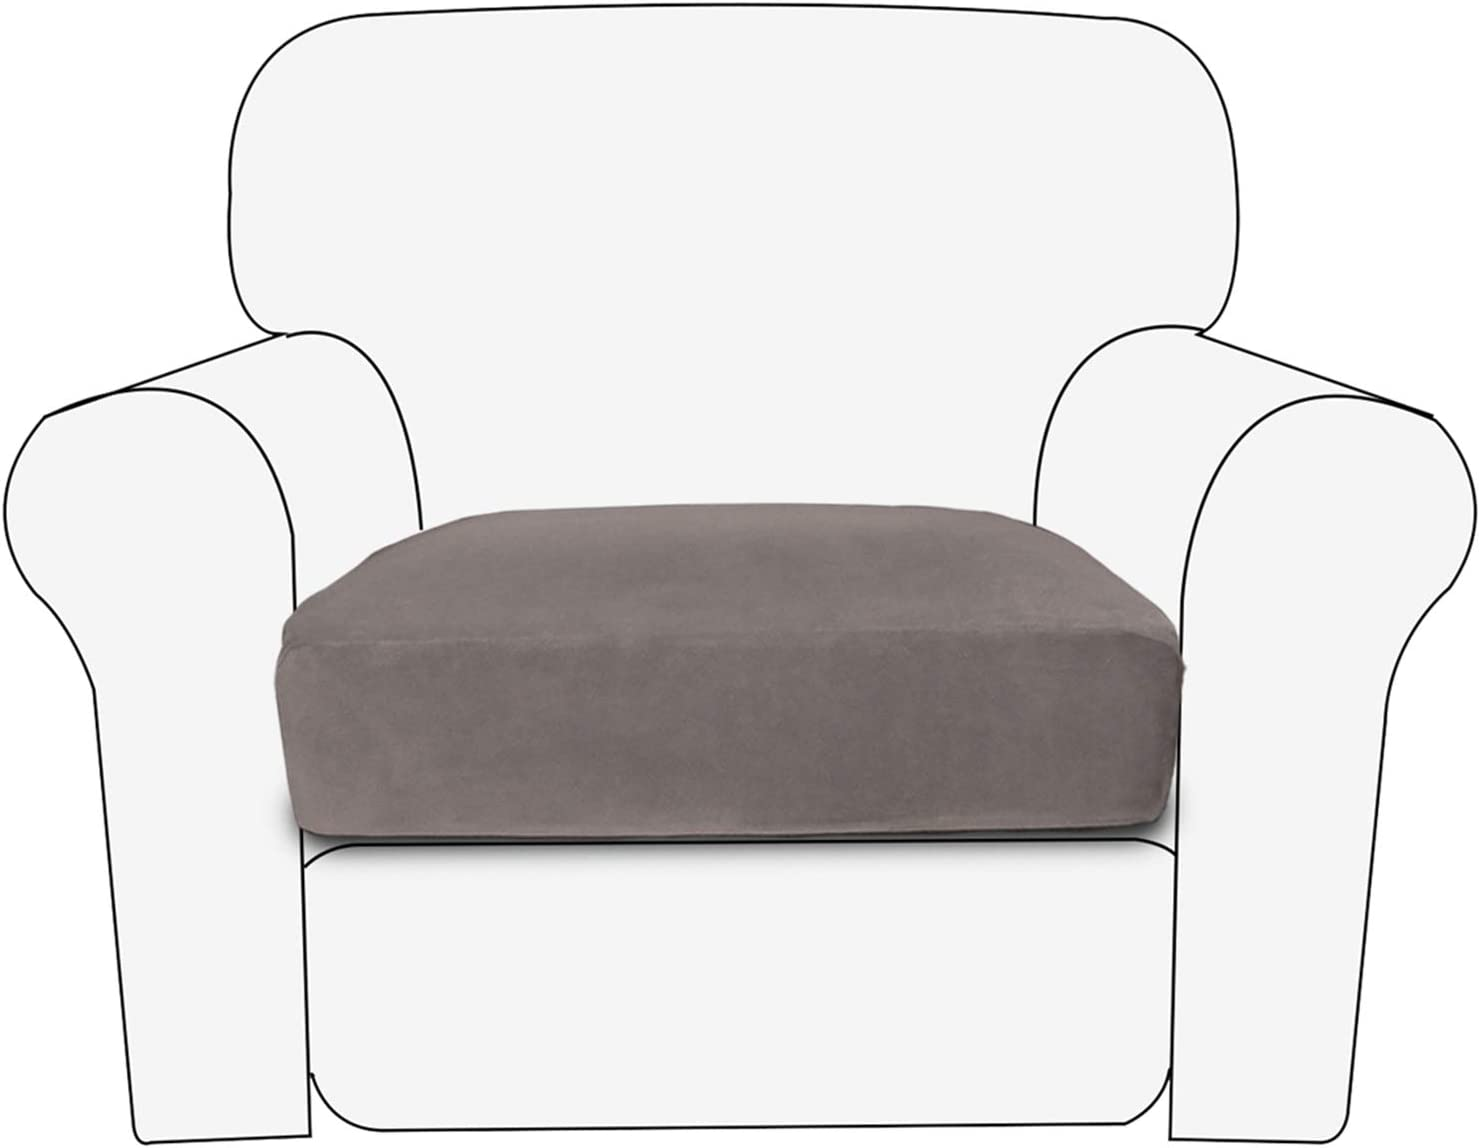 PureFit Stretch Velvet Non-Slip Sofa Couch Cushion Cover - Removable Sofa Seat Covers for Dogs, Washable Elastic Furniture Slipcovers Protector for Kids and Pets (Chair, Taupe)